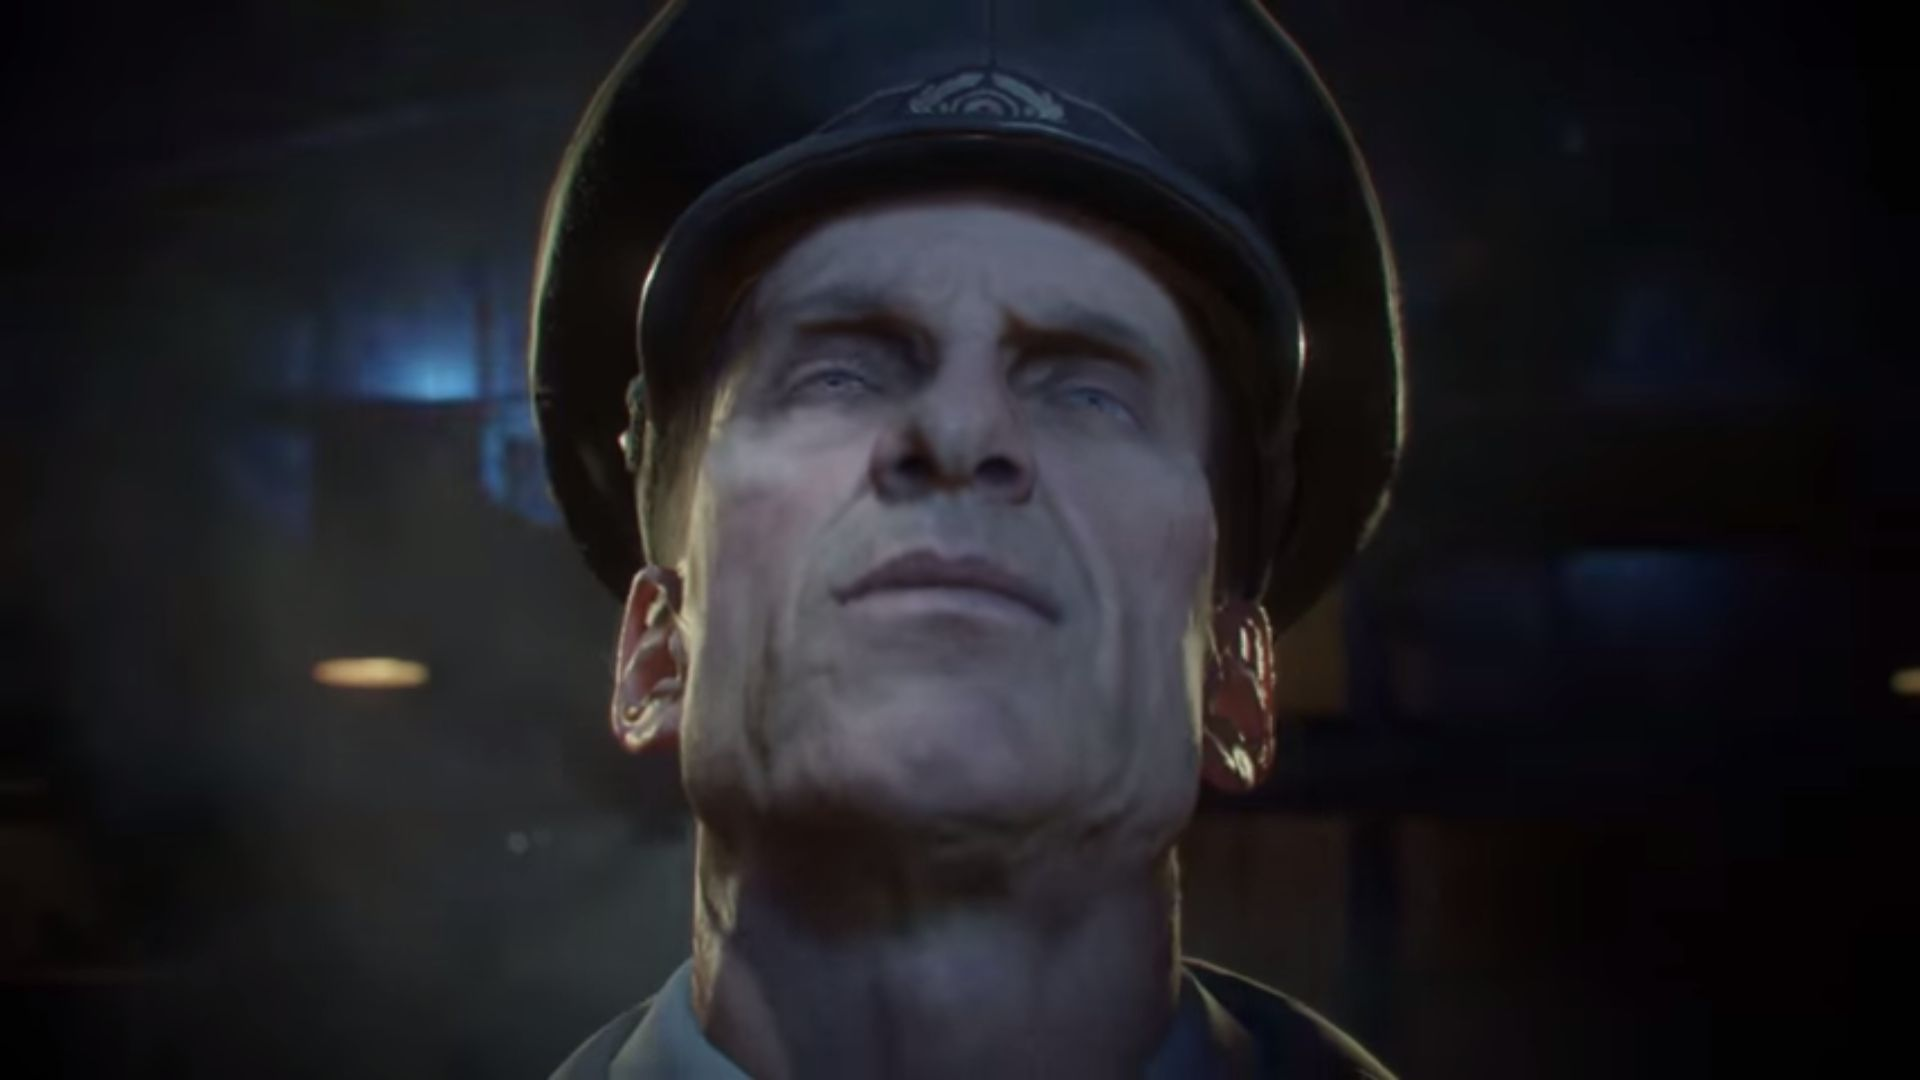 New Call Of Duty Black Ops Iii Trailer Shows The Giant Zombie